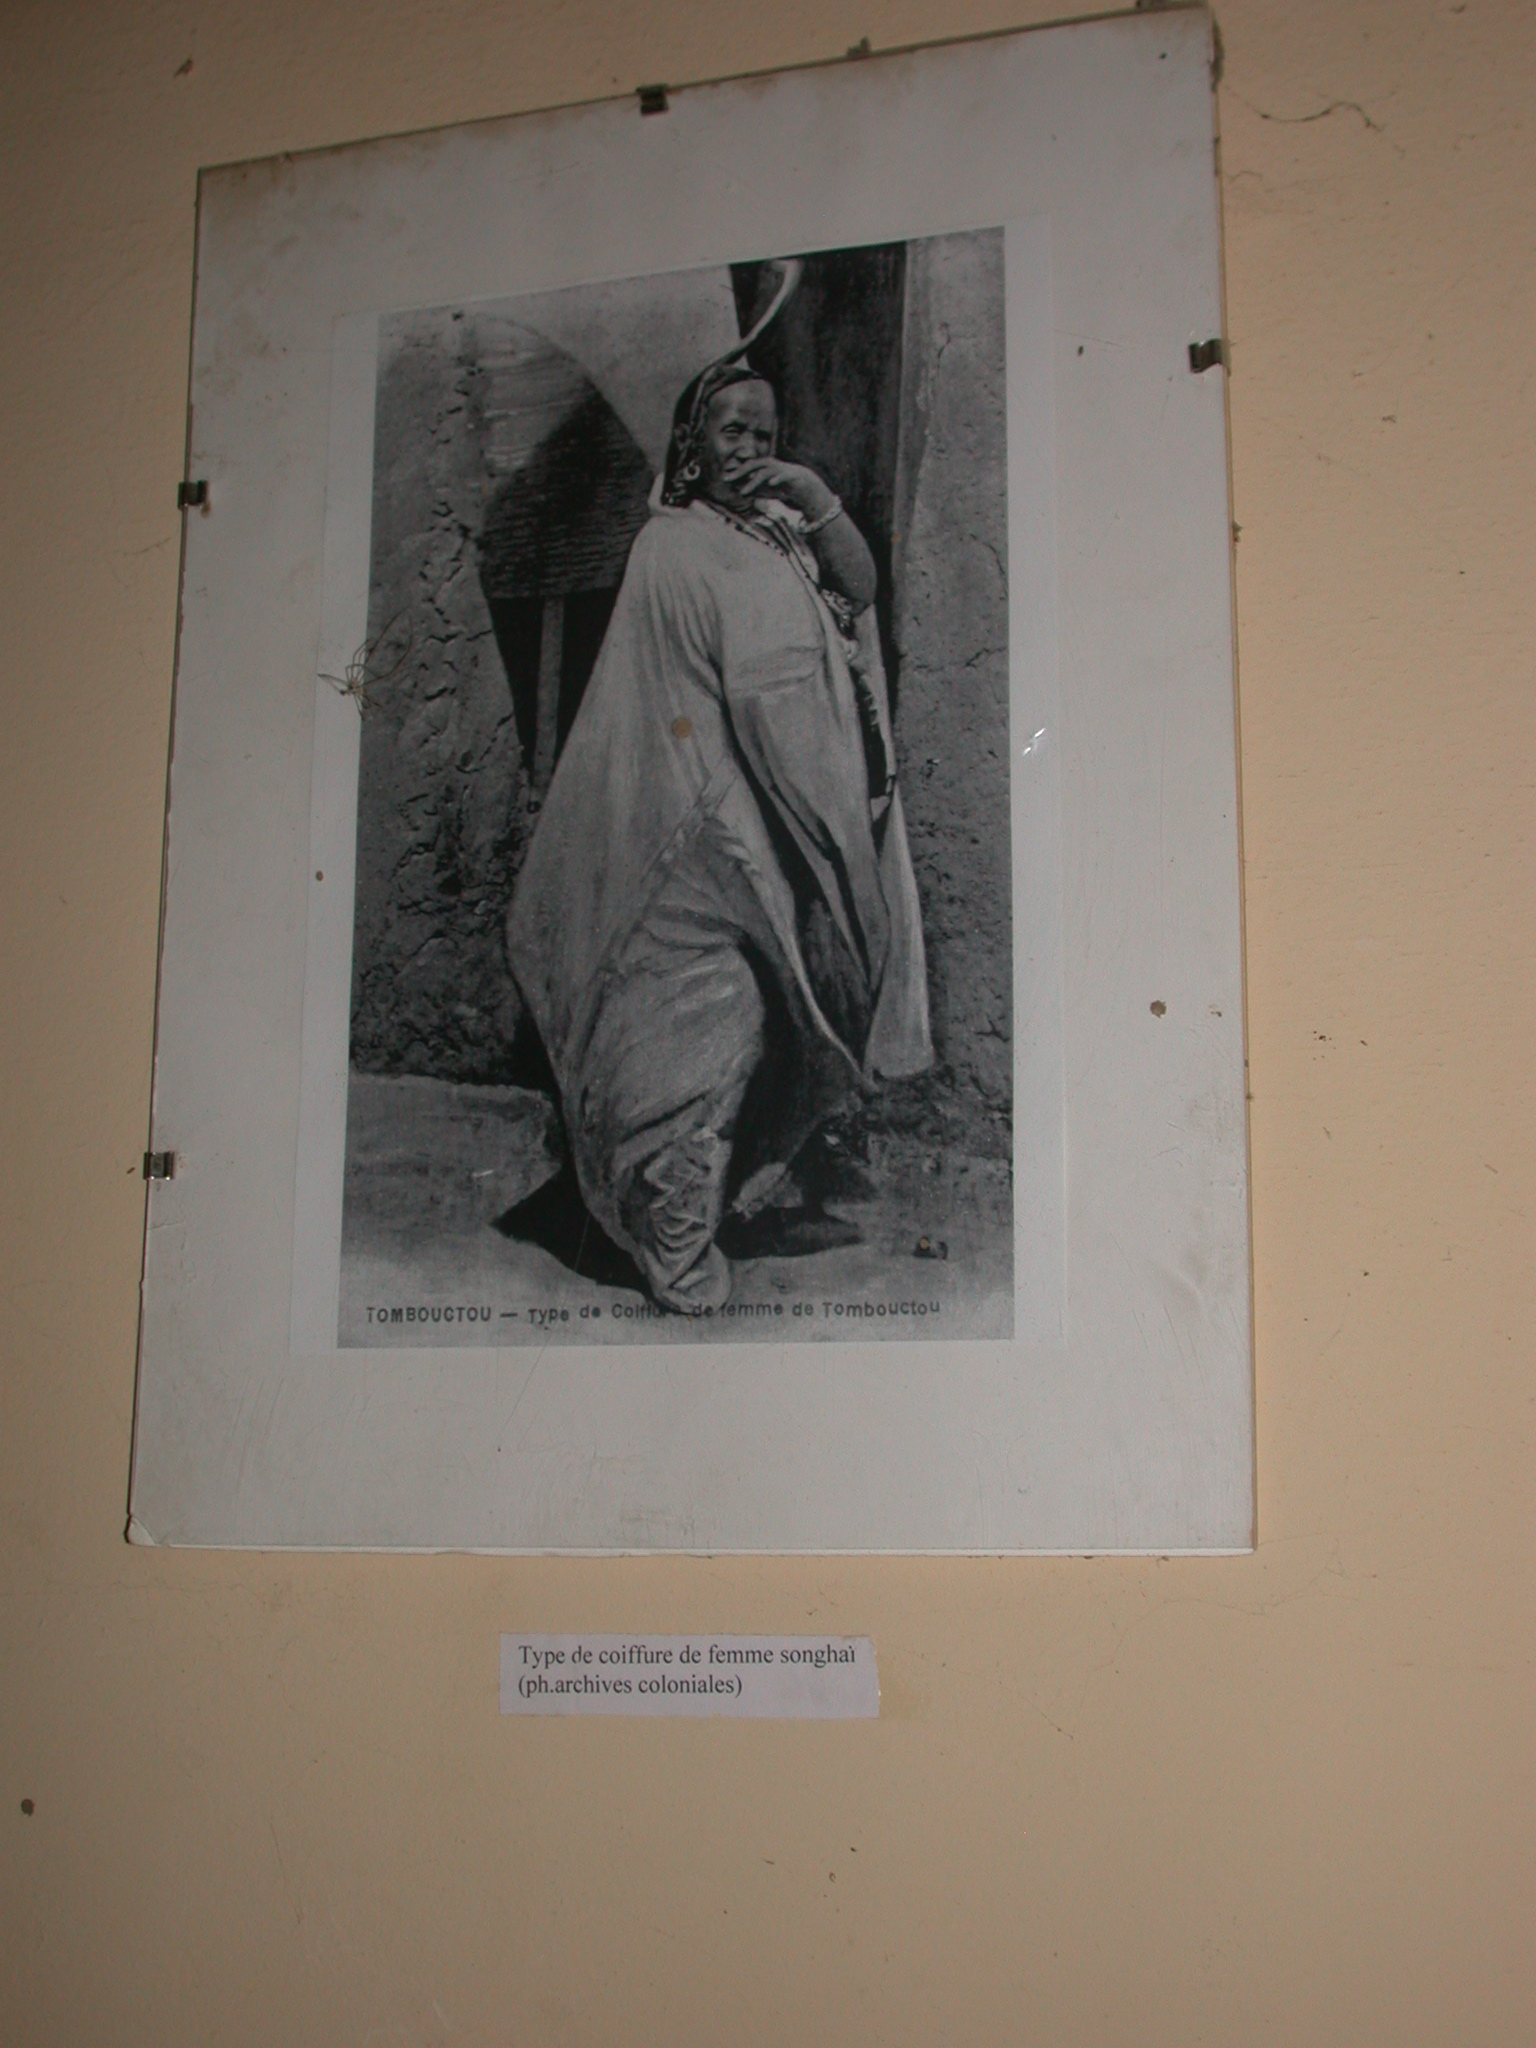 Photo of Hairstyle of Songhay Woman, Timbuktu Ethnological Museum, Timbuktu, Mali